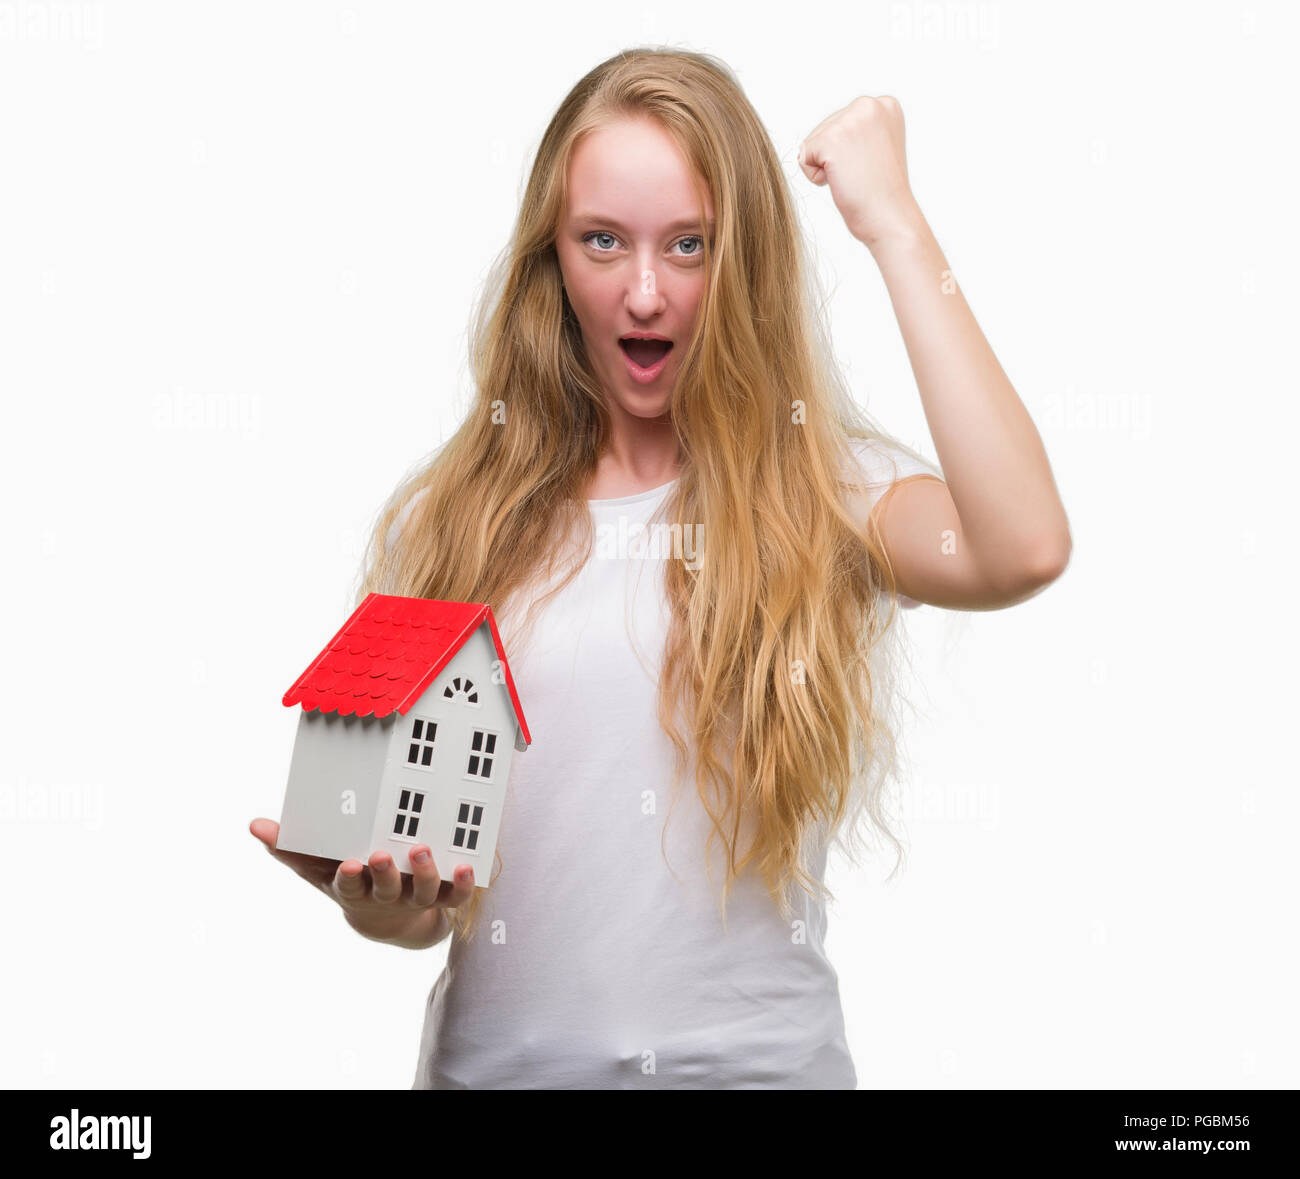 Blonde teenager woman holding family house annoyed and frustrated shouting with anger, crazy and yelling with raised hand, anger concept - Stock Image